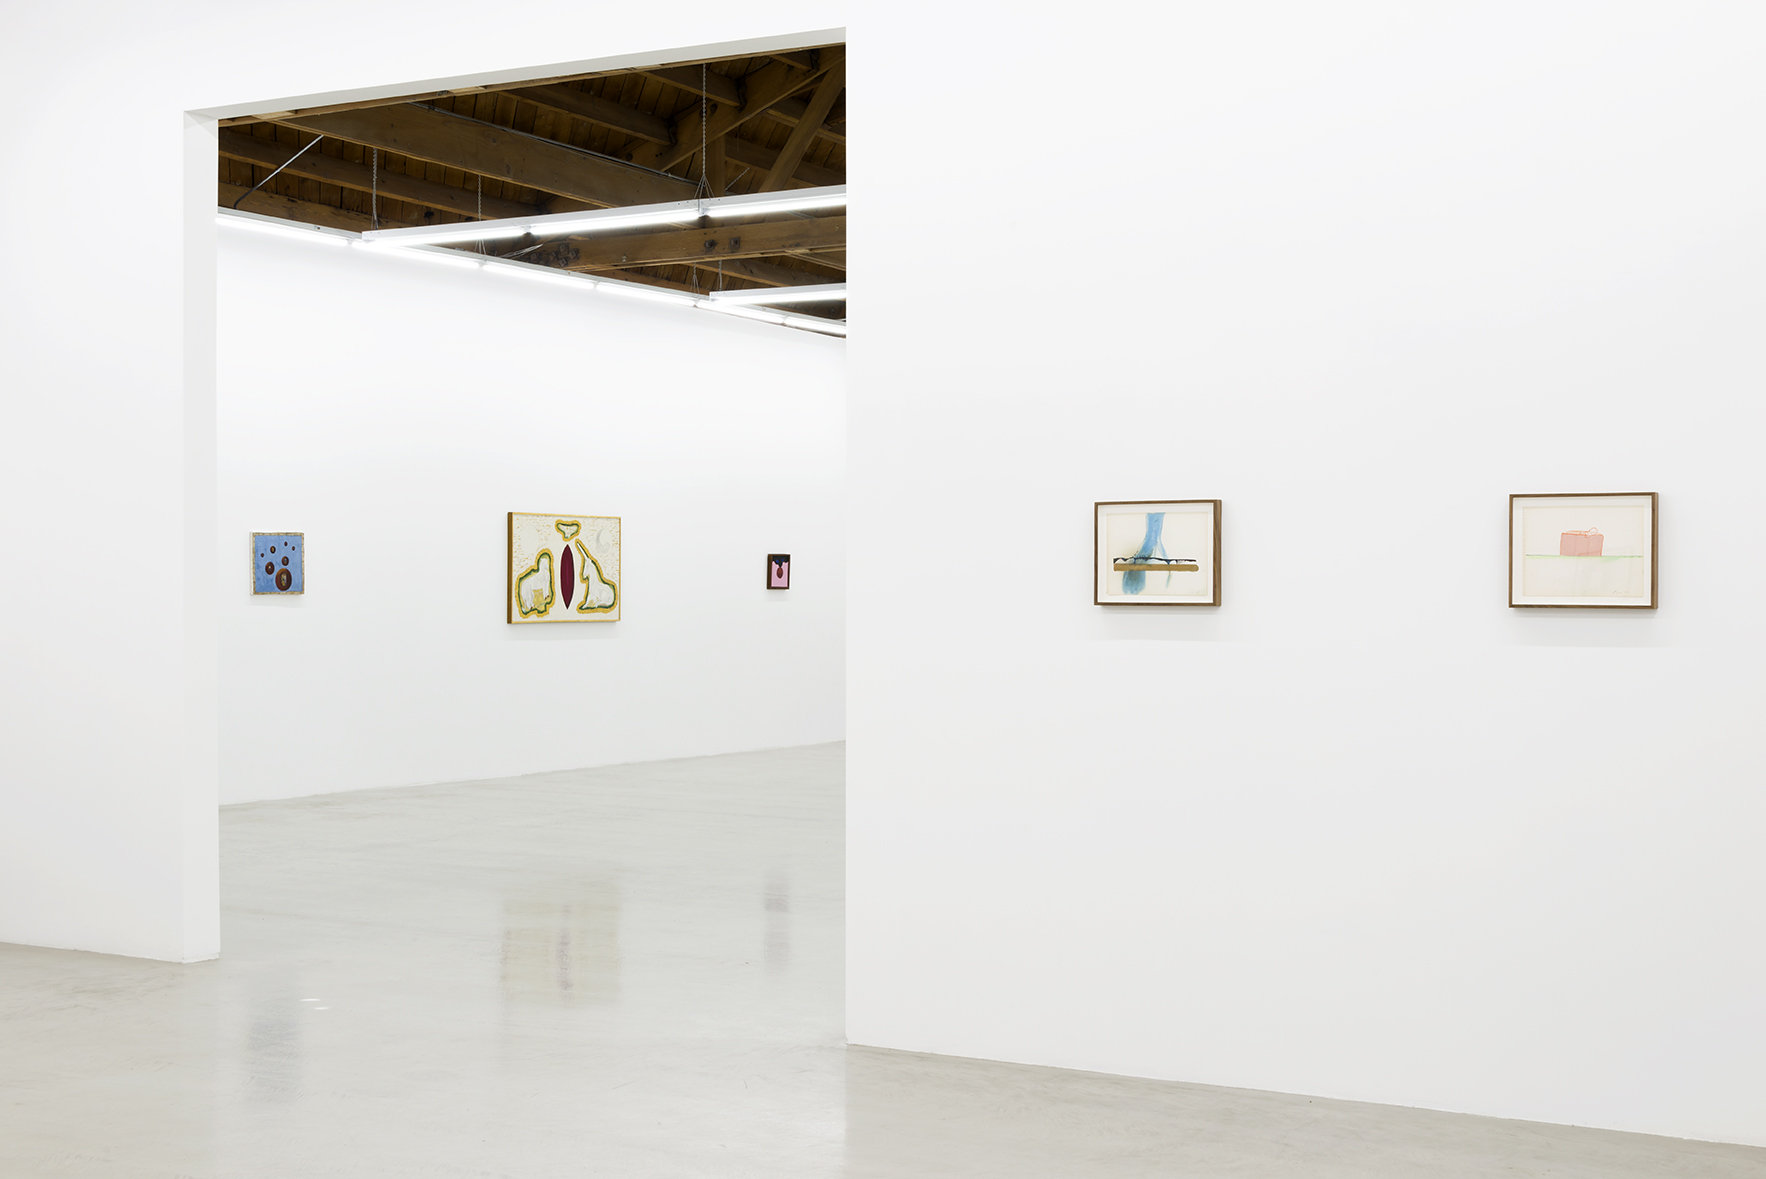 Installation view of Joan Snyder's works on paper as well as Forrest Bess works painted from the artist's visions